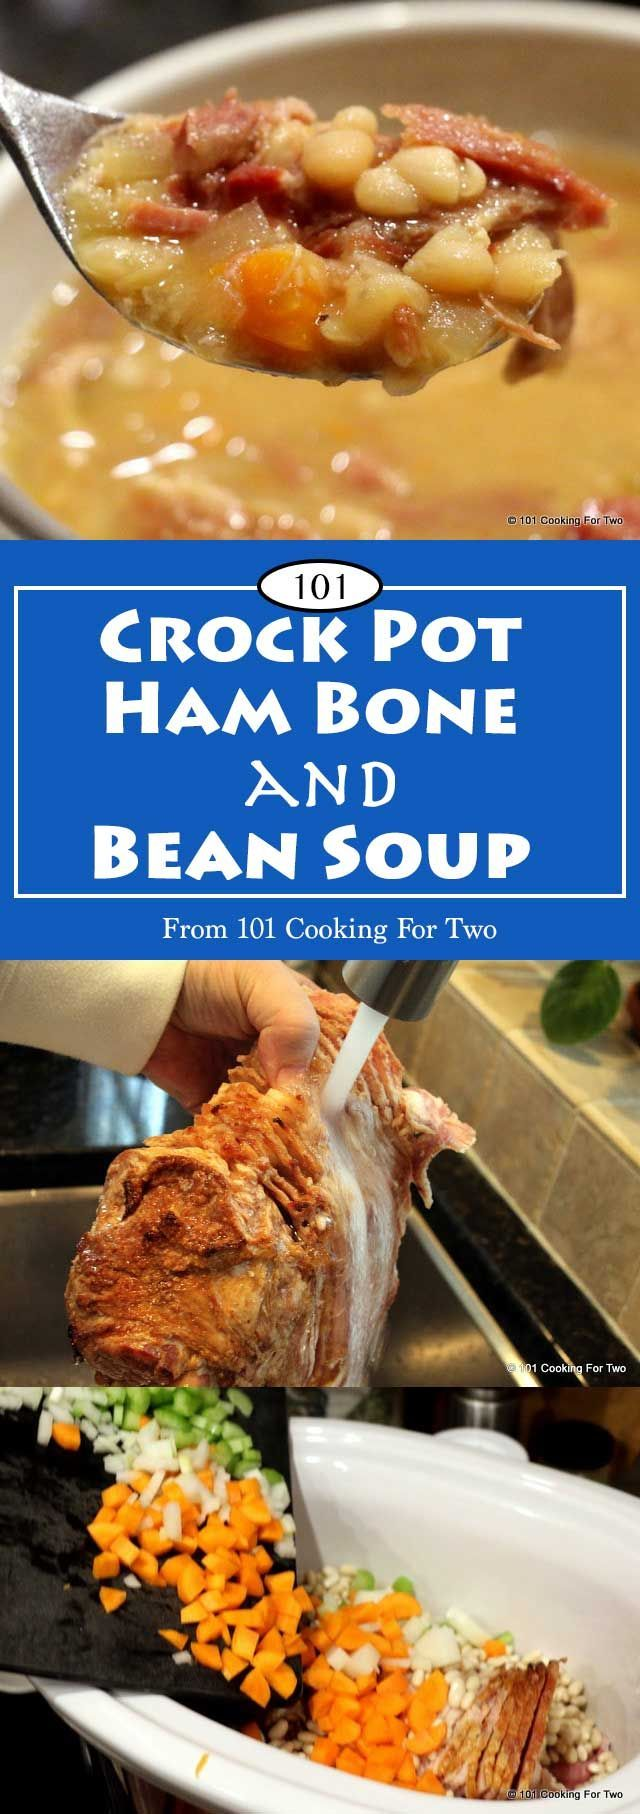 Crock Pot Ham Bone Soup from 101 Cooking For Two